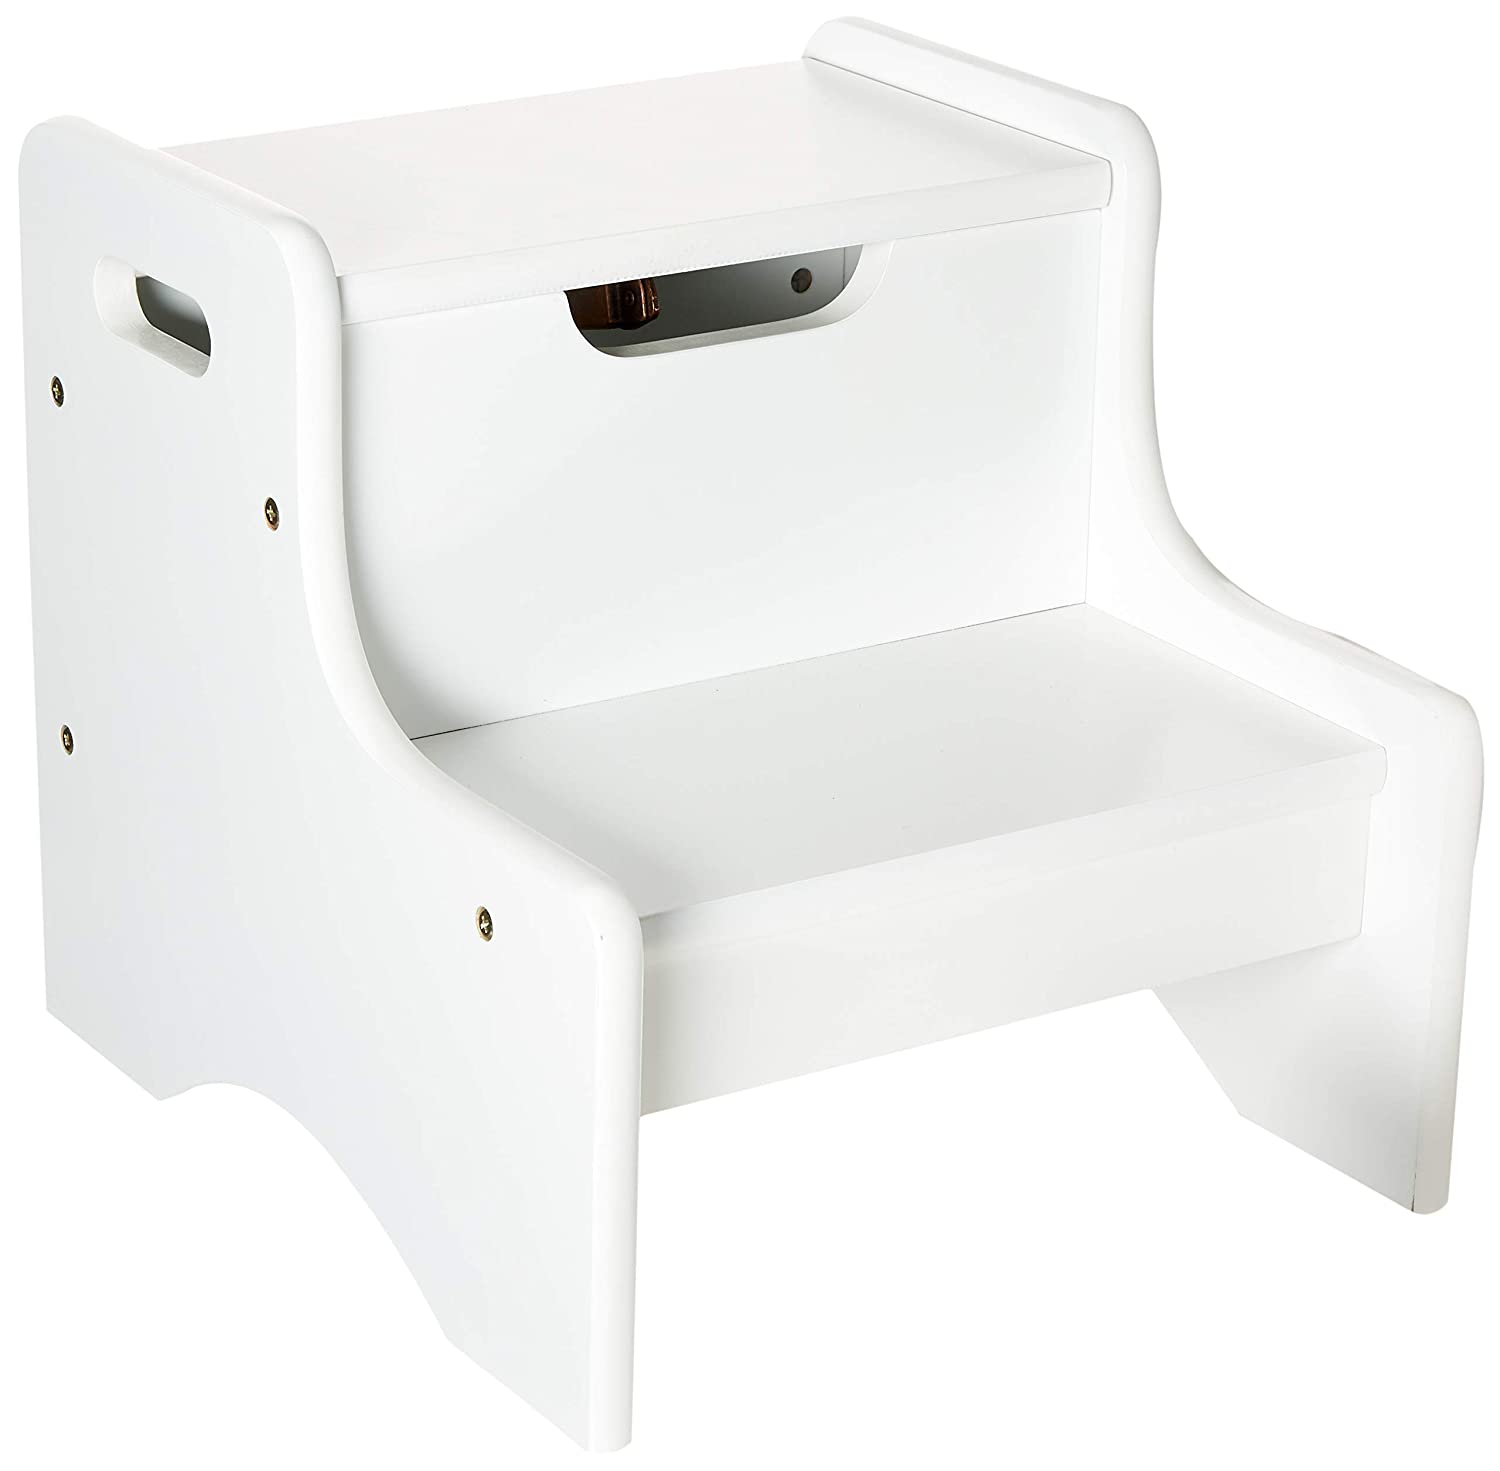 Gift Mark Childrens Two Step Stool with Storage, White 2020W